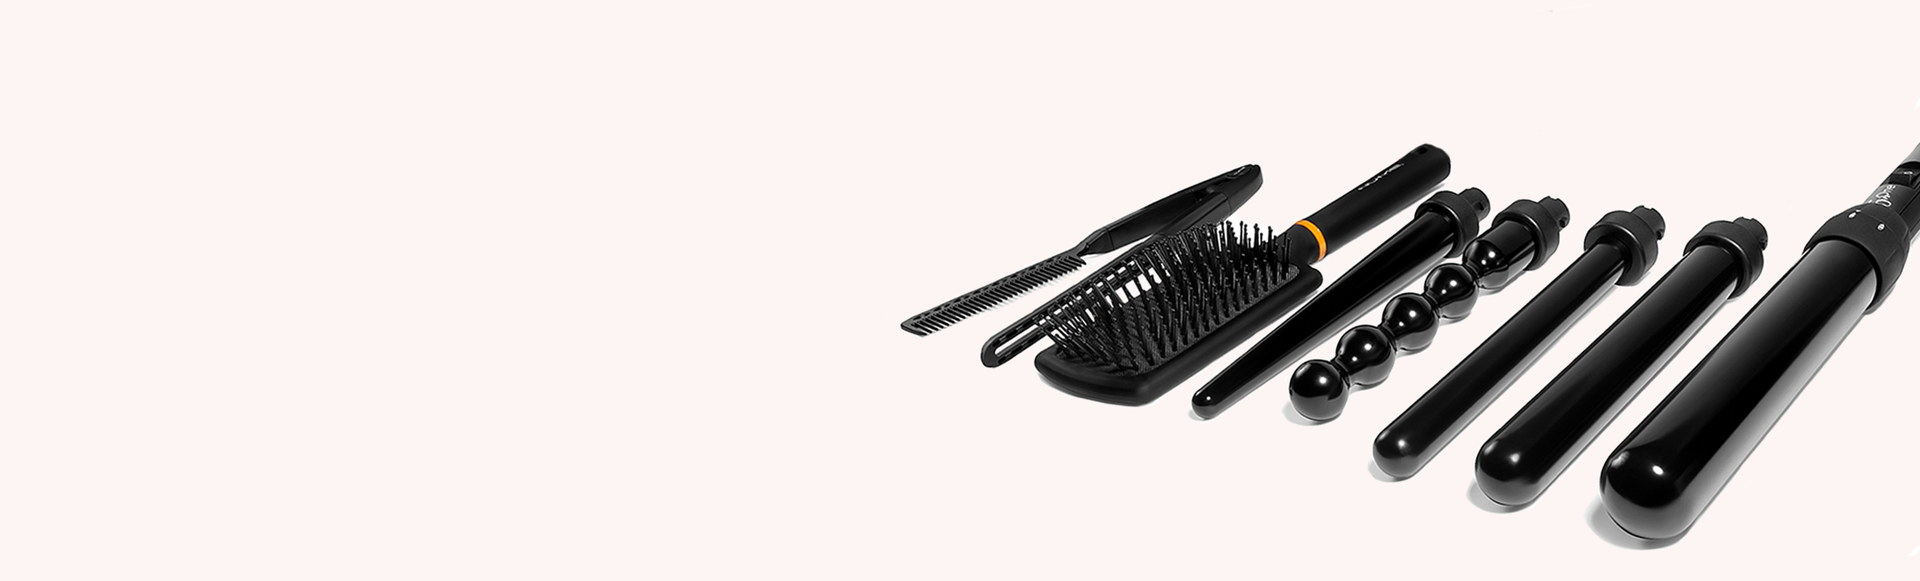 Hair Styling Sets